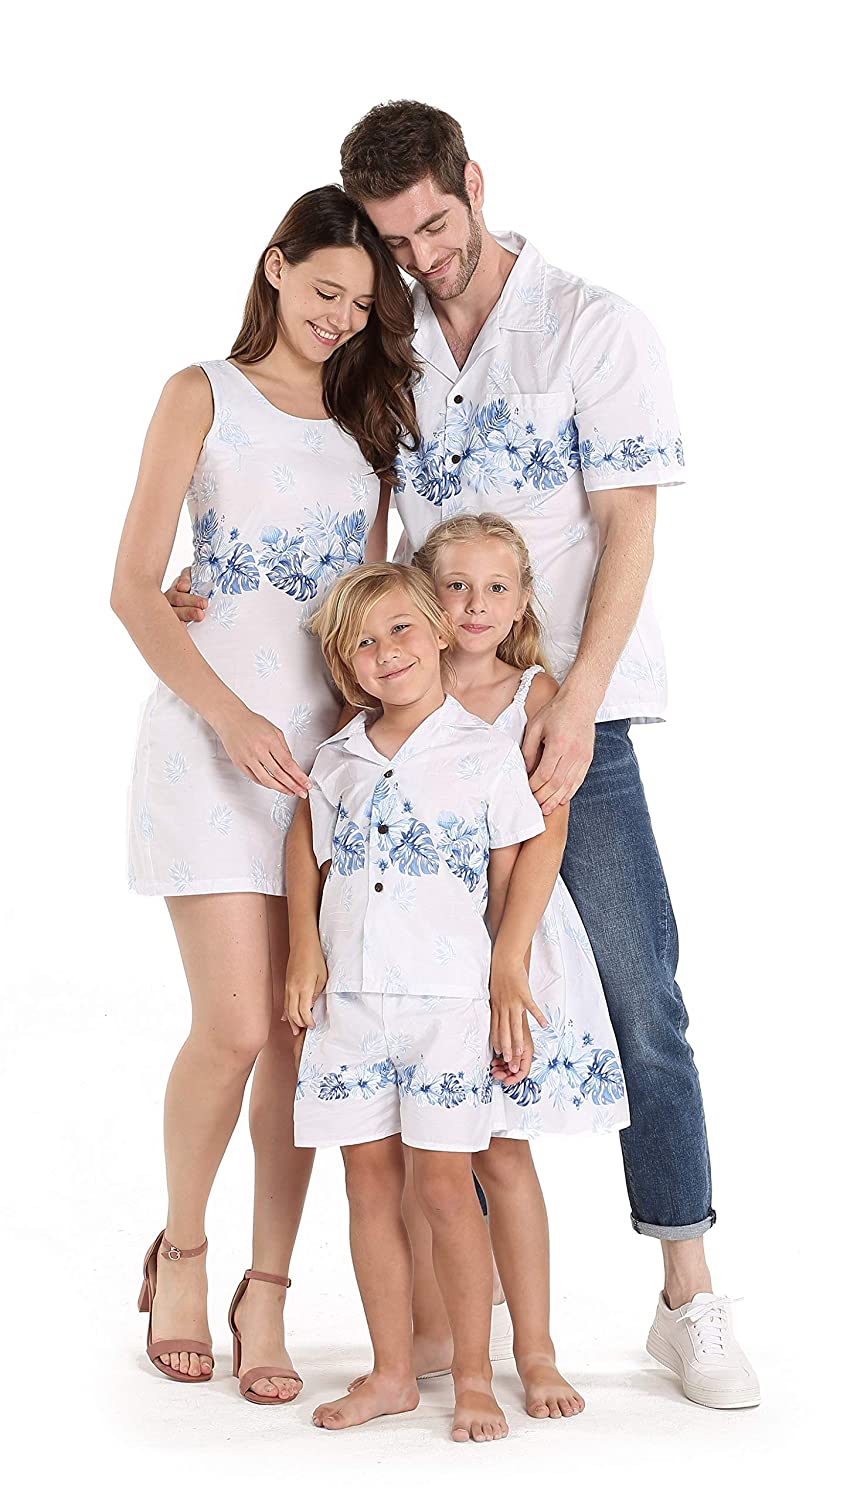 Matching Father Son Hawaiian Luau Outfit Men Shirt Boy Shirt Shorts White with Blue Hibiscus